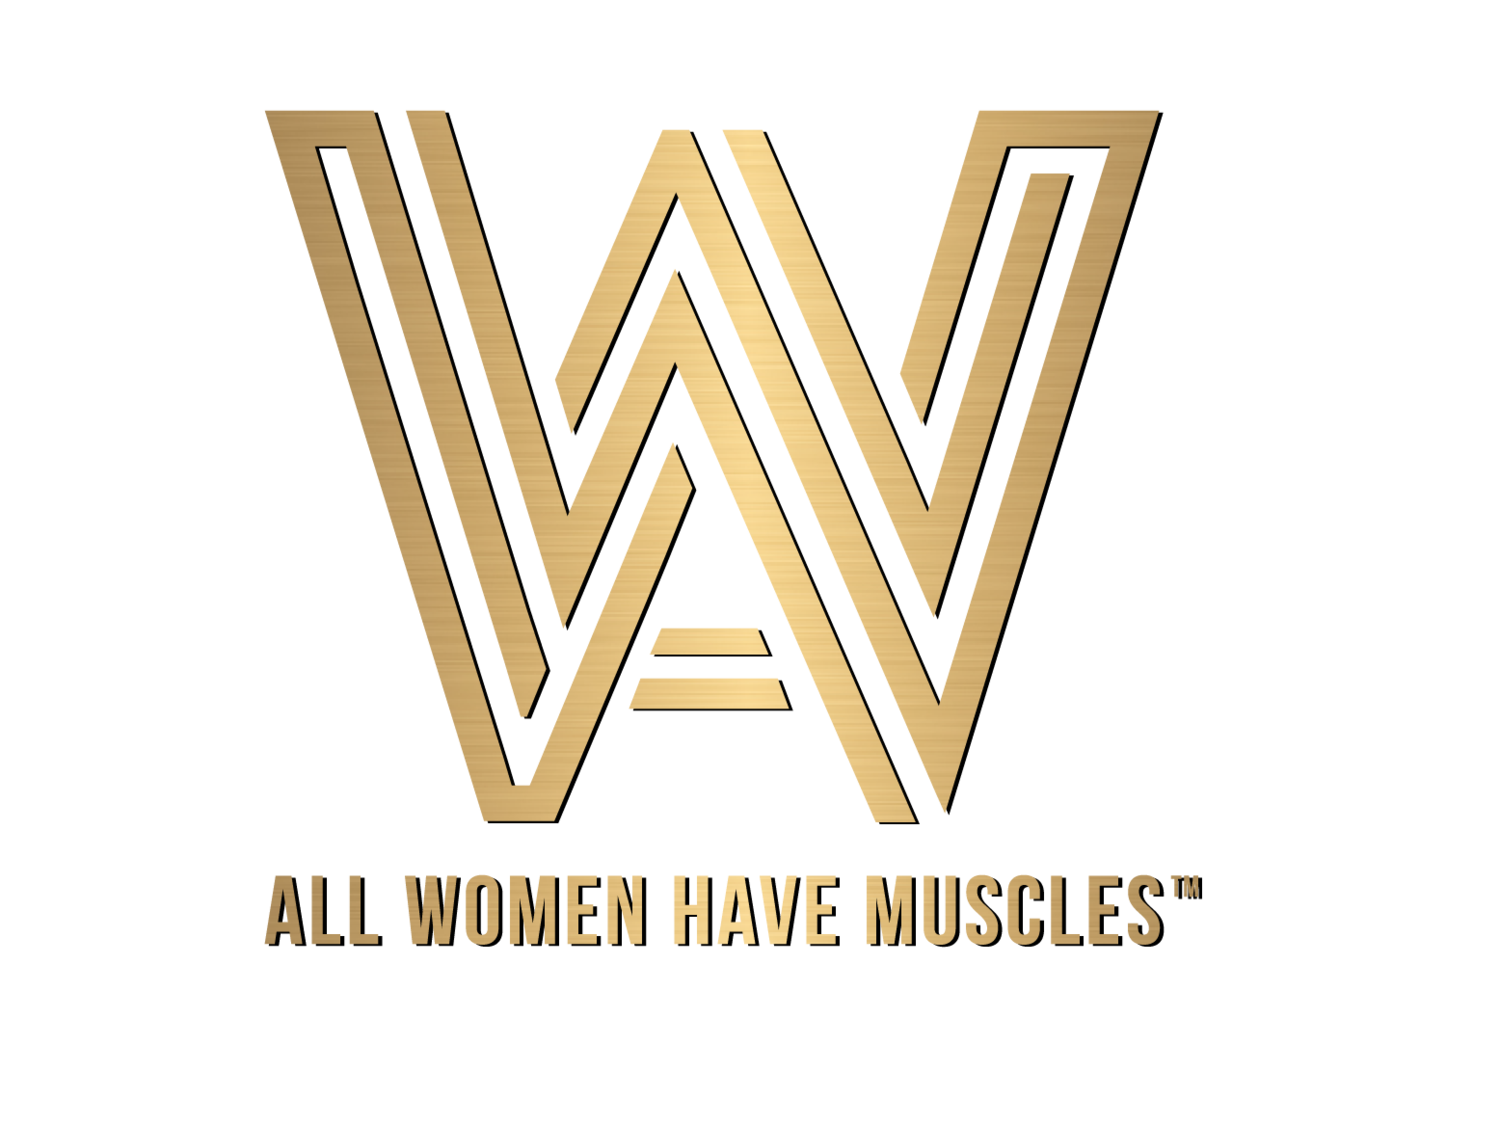 All Women Have Muscles